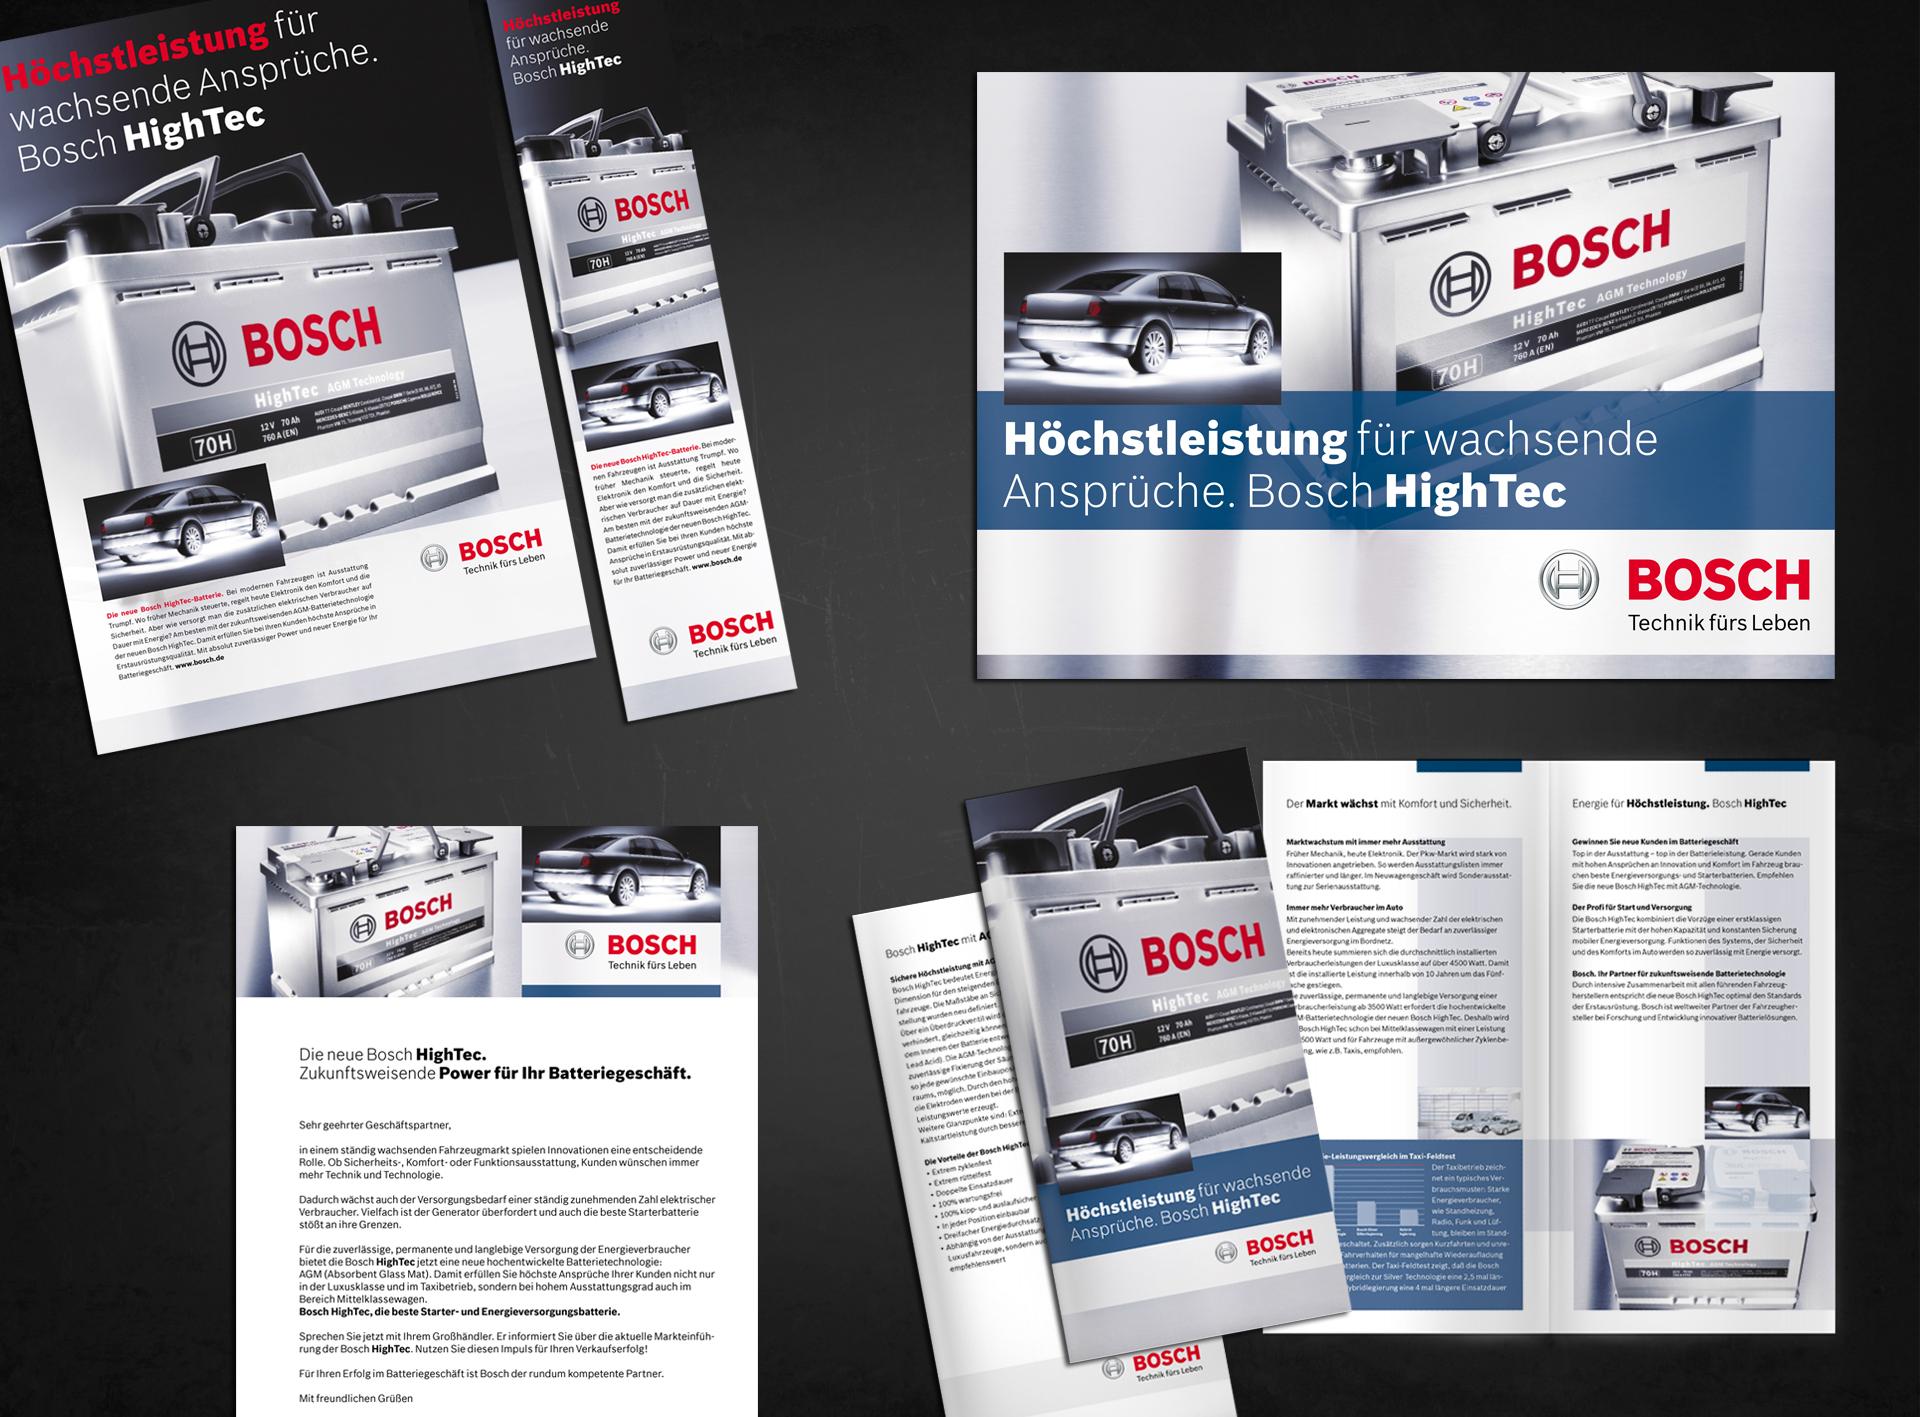 Bosch HighTec-Batterie Kampagne